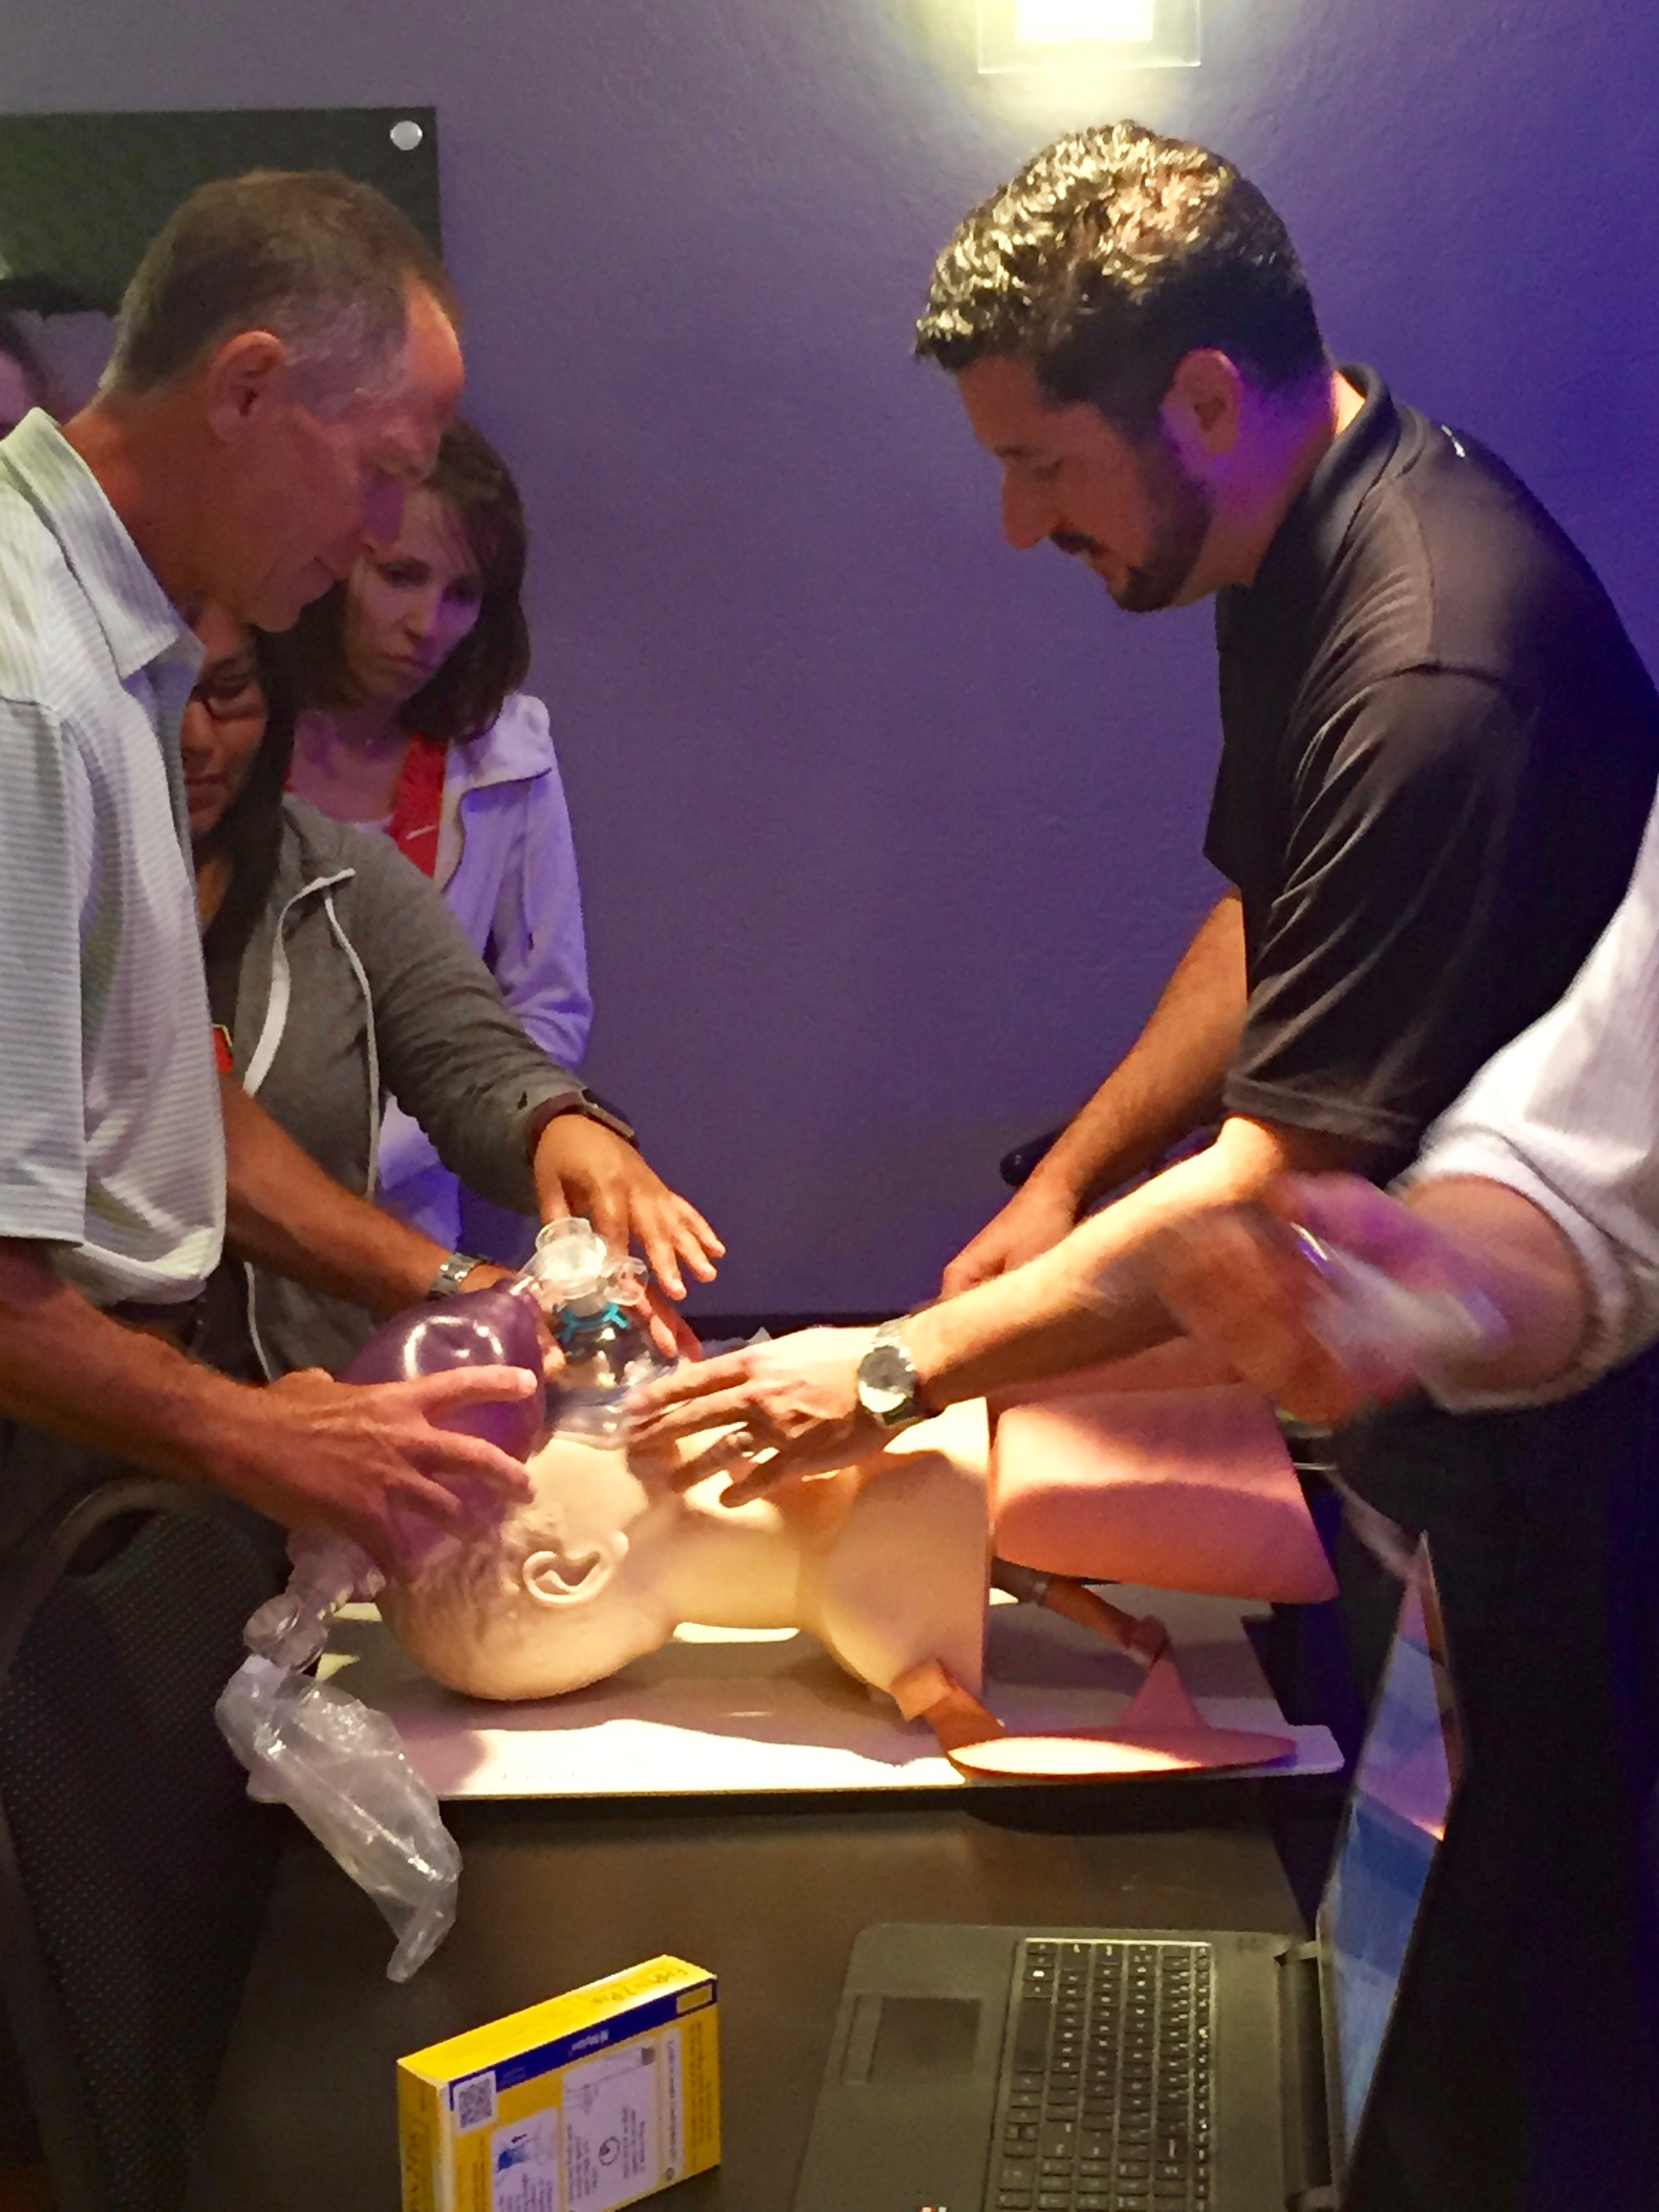 Ali J. Baghai, CRNA, demonstrating airway management techniques. Pictured here with Dr. Jorgenson, DDS.